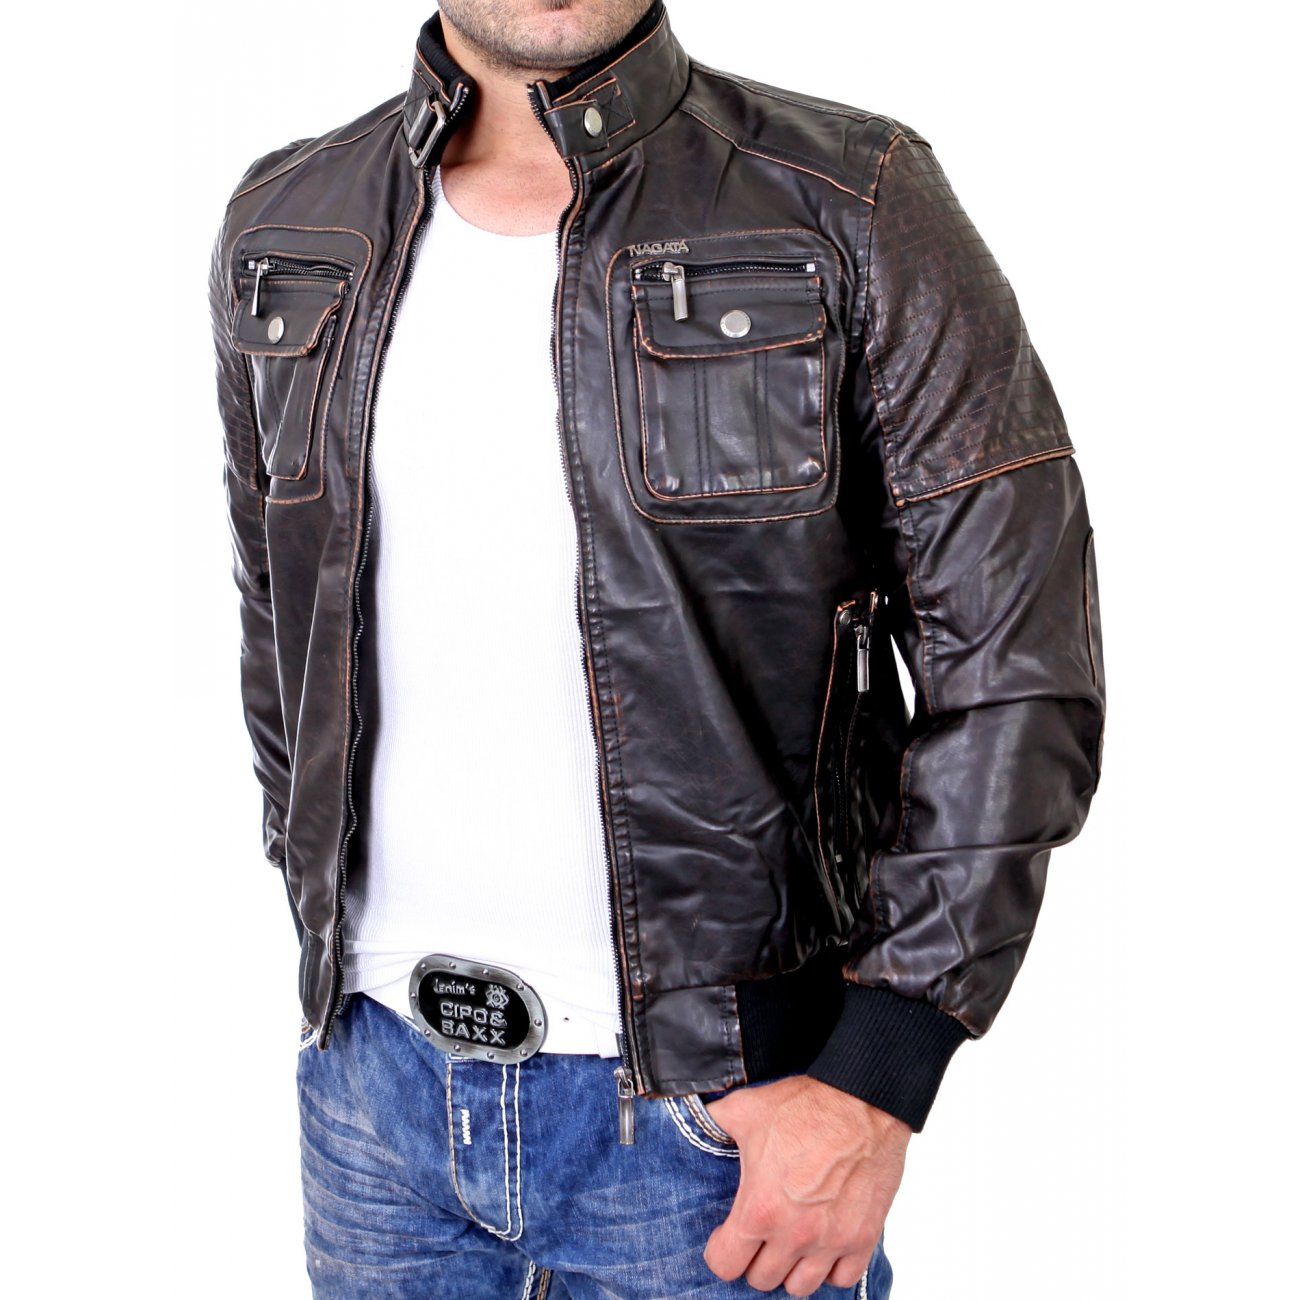 kunstlederjacke herren in braun biker lederjacke g nstig. Black Bedroom Furniture Sets. Home Design Ideas